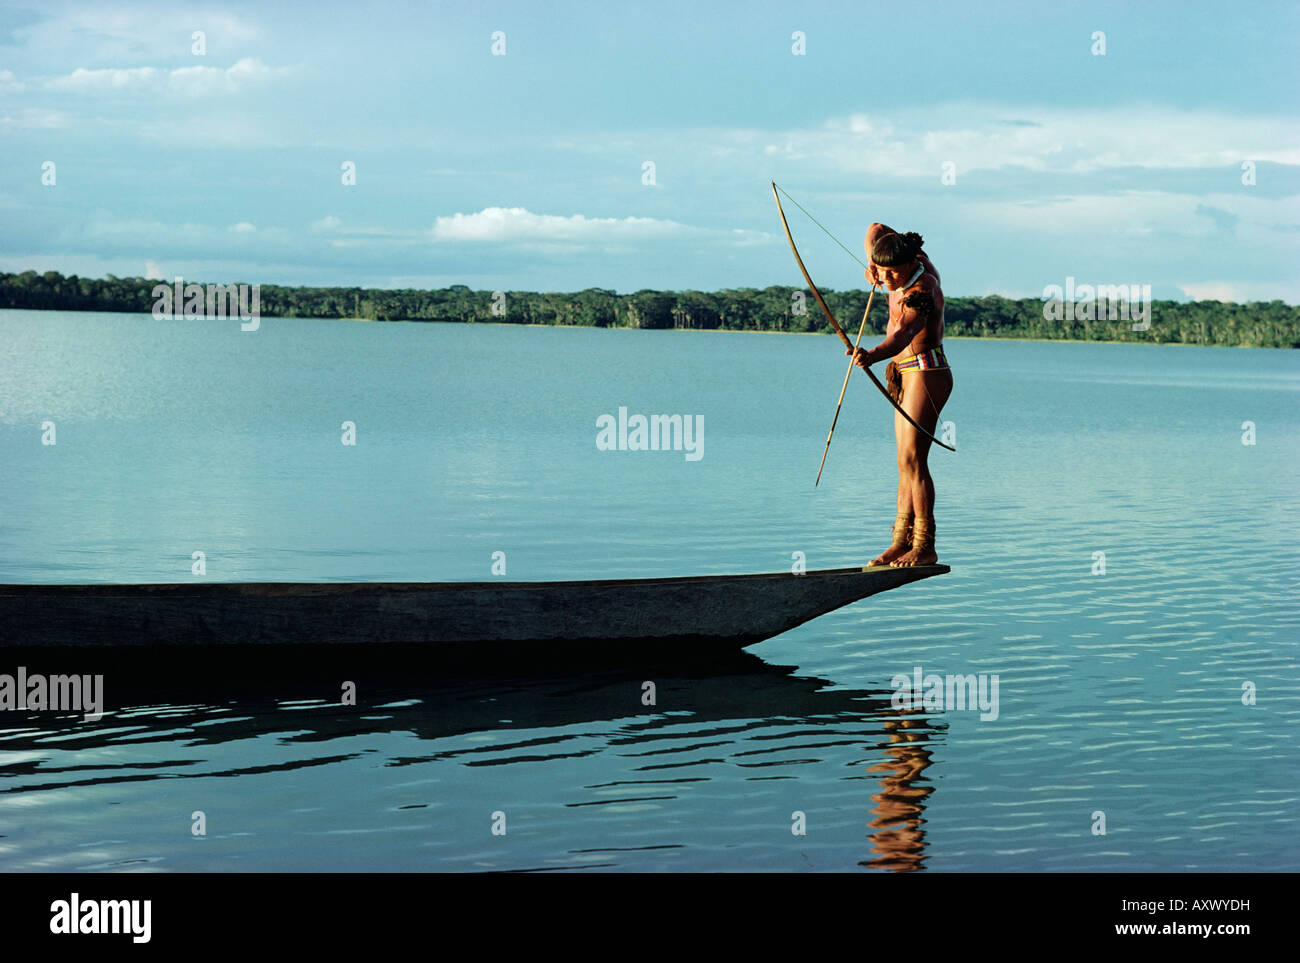 Indian fishing with bow and arrow, Xingu, Amazon region, Brazil, South America - Stock Image